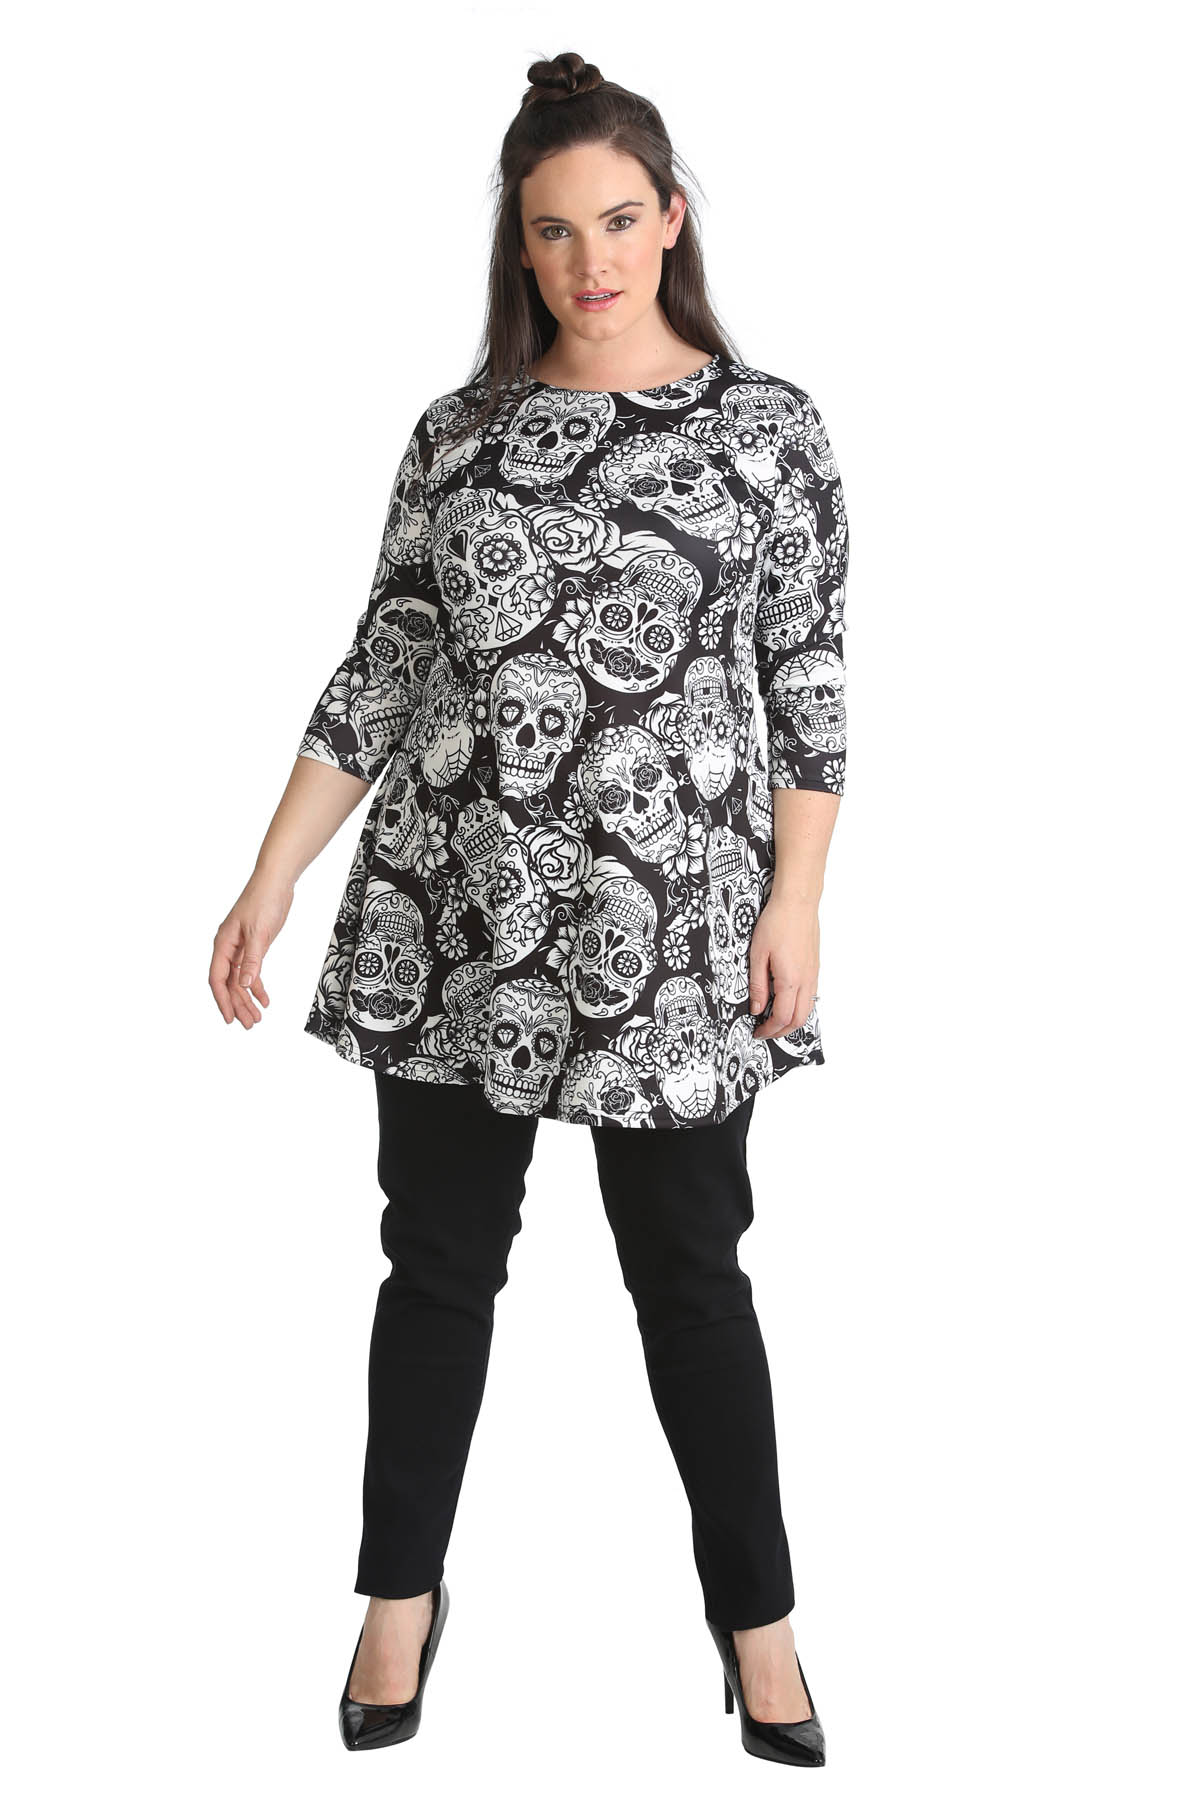 Women's Skull Tops come in an assortment of colors including black. Find a real bargain on eBay by shopping new or pre-owned women's T-shirts. Plus, Women's Skull Tops are a good choice for feeling your best thanks to some sexy new t-shirts.